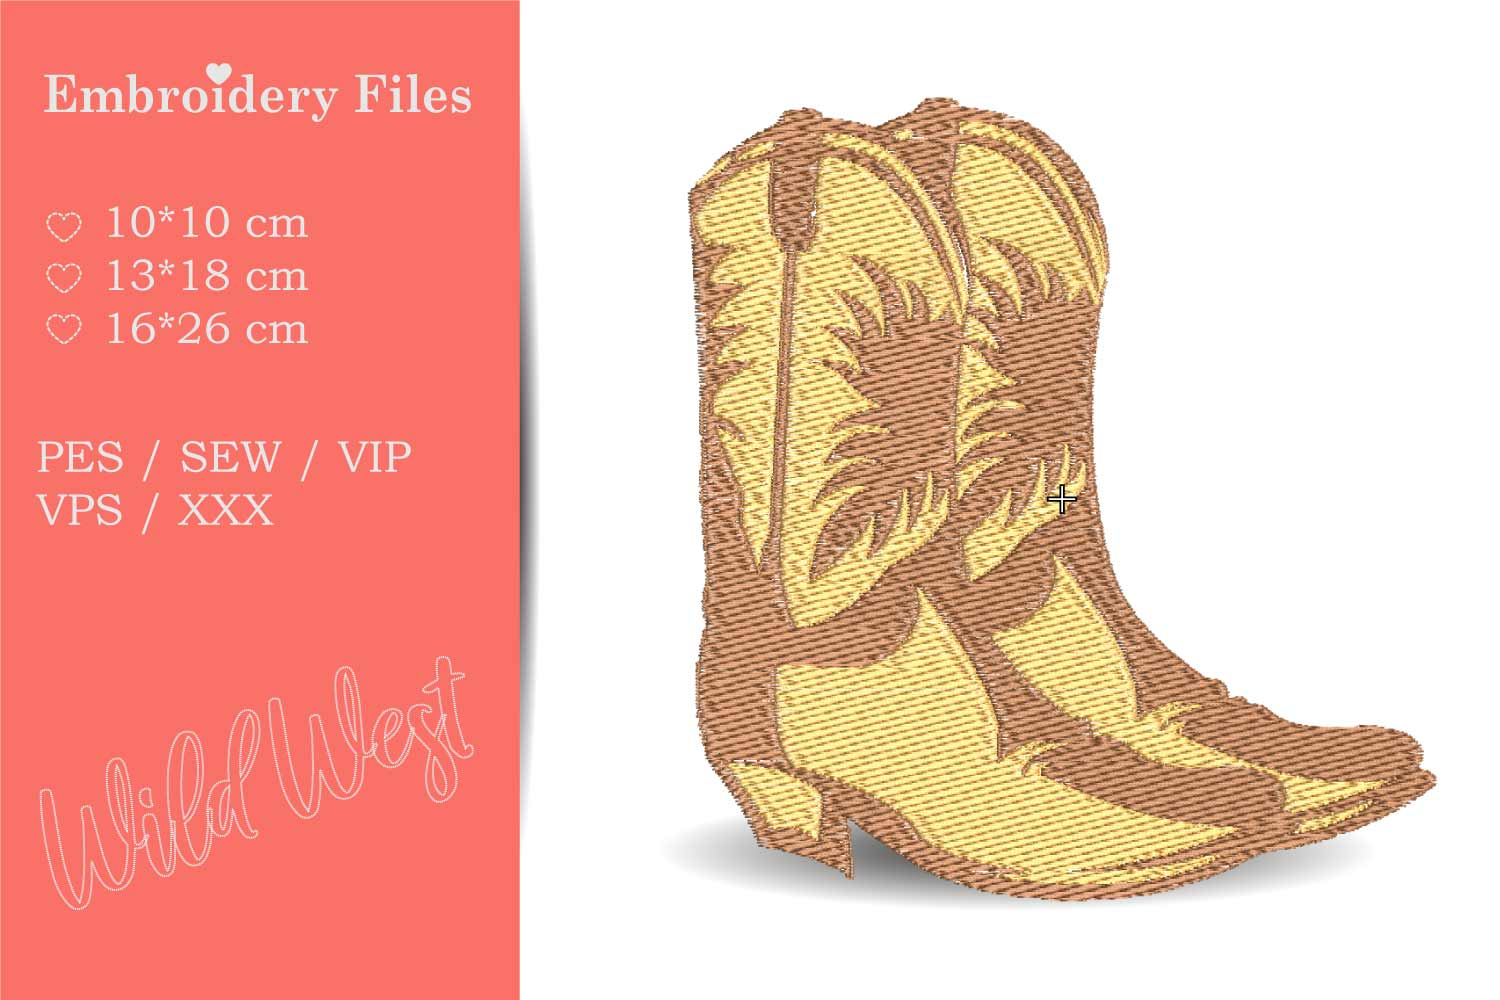 Cowboy Boots - Embroidery File for Beginners example image 1